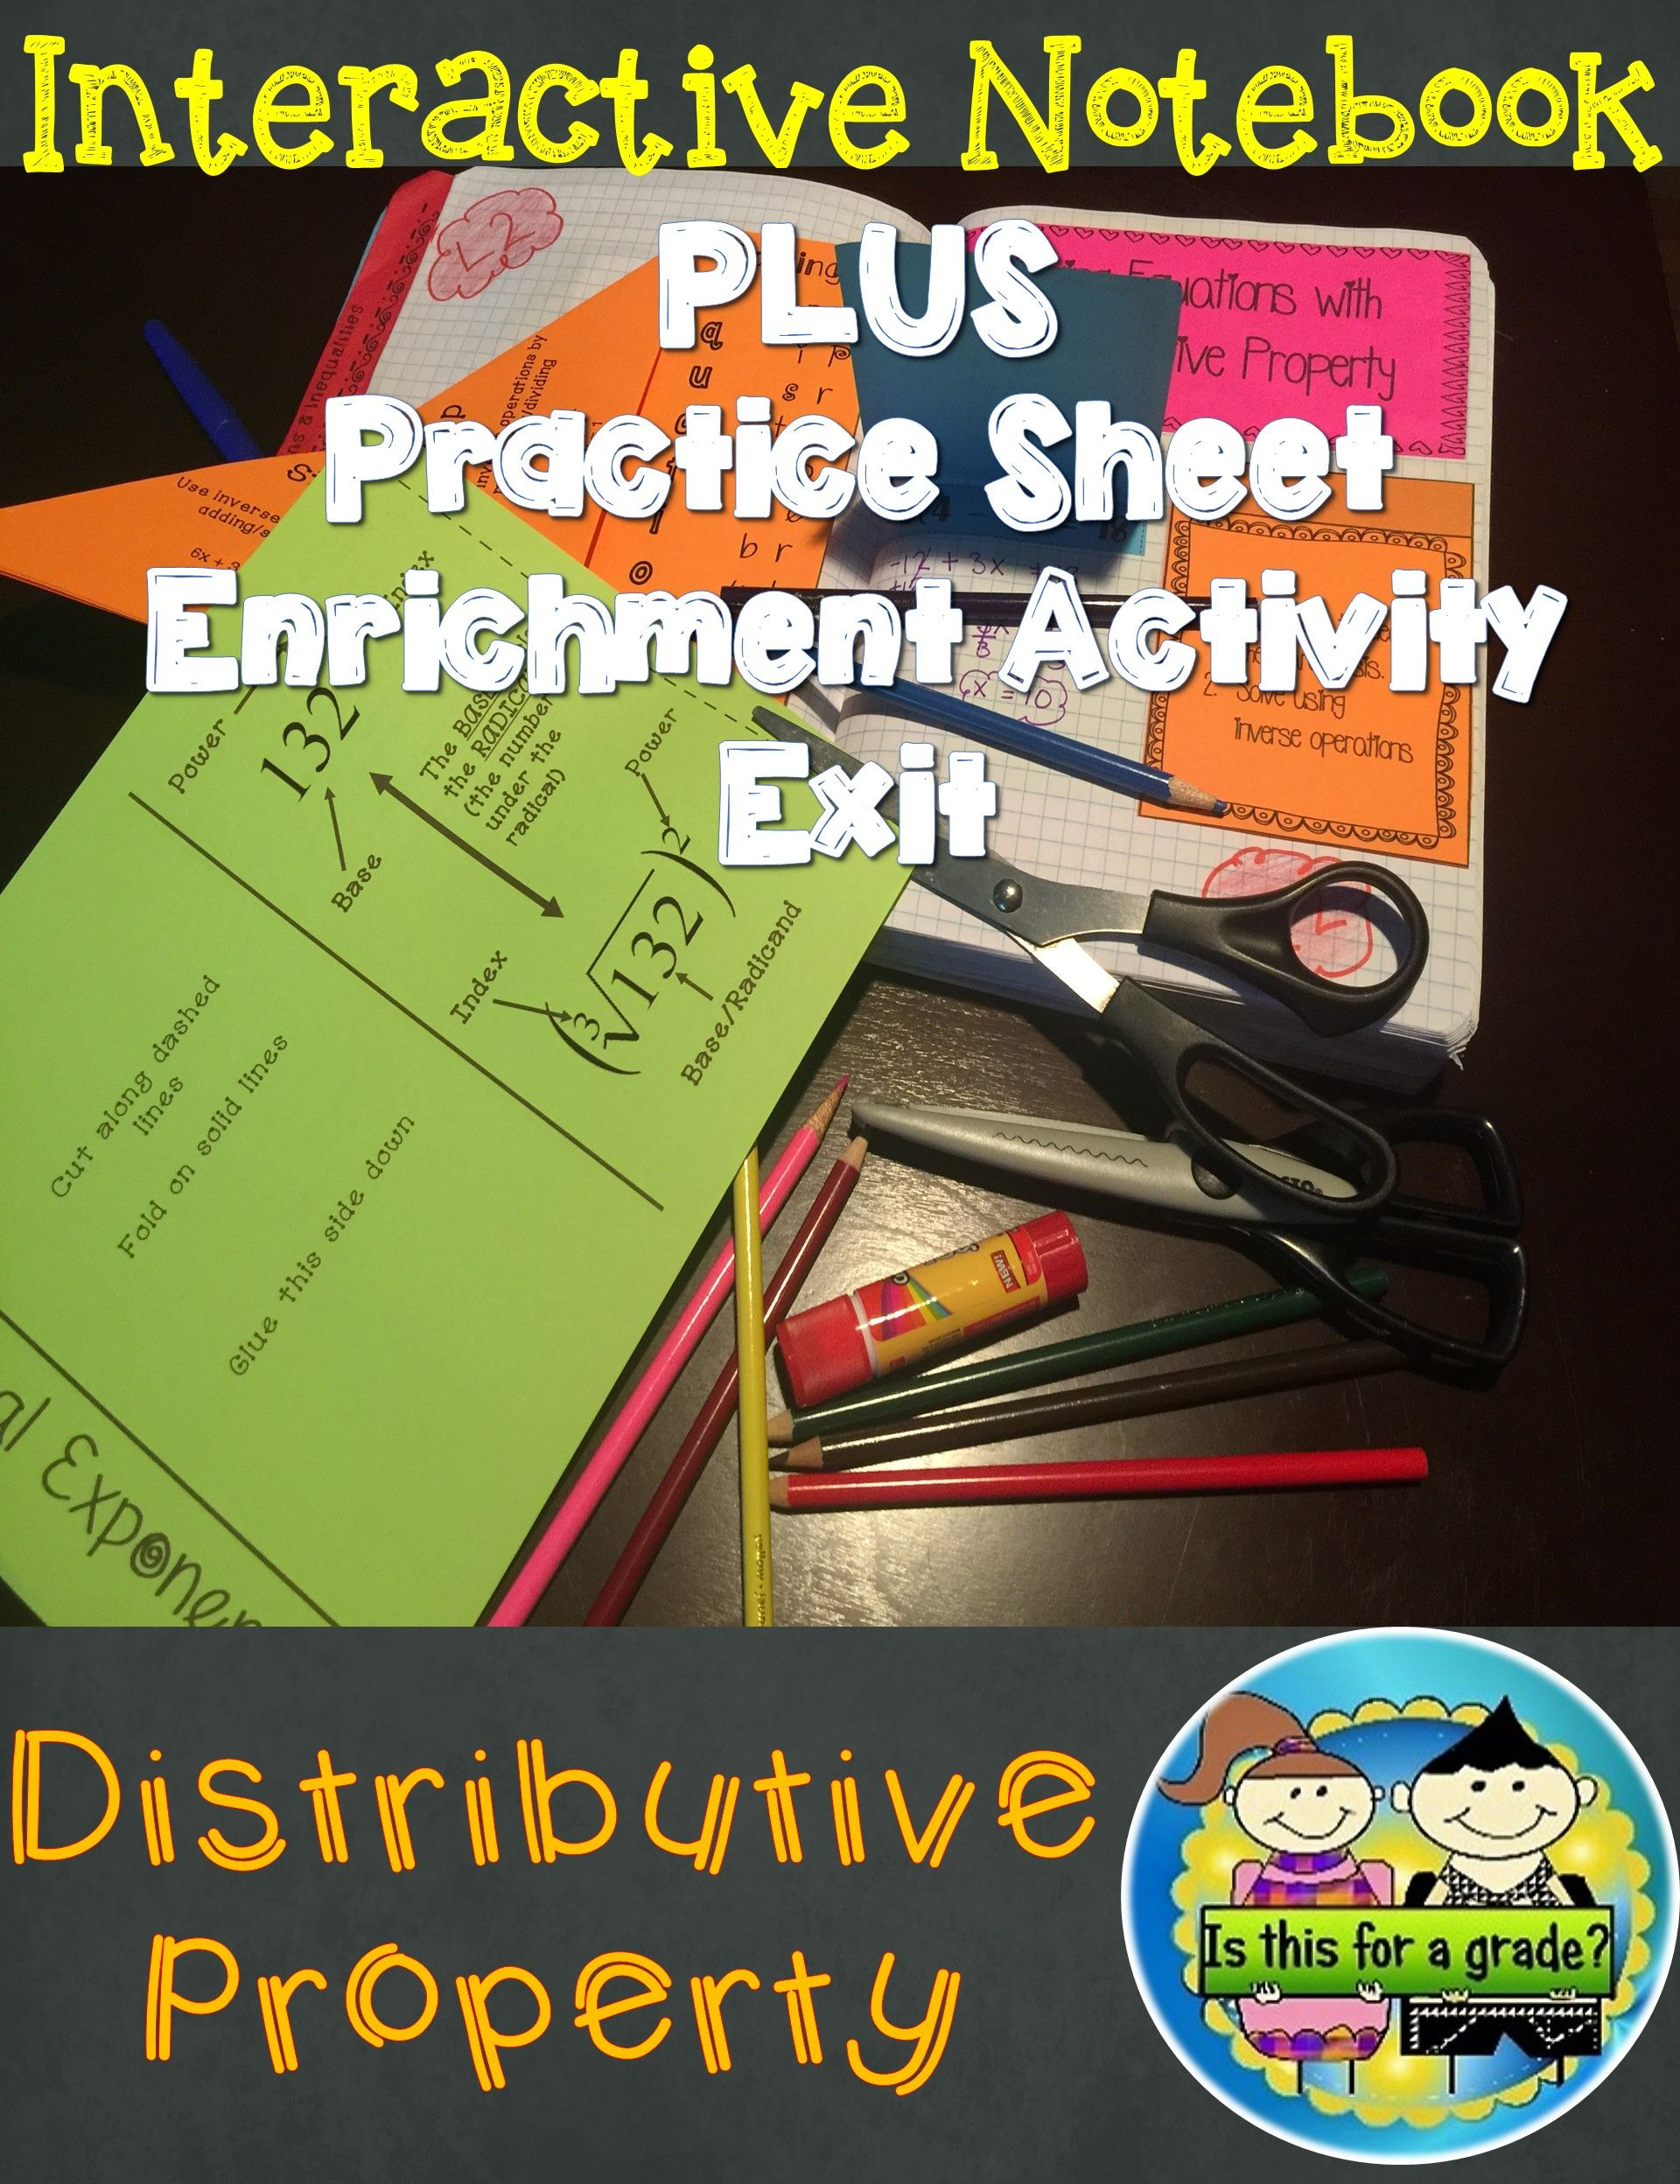 The Distributive Property Foldable Inb Activity